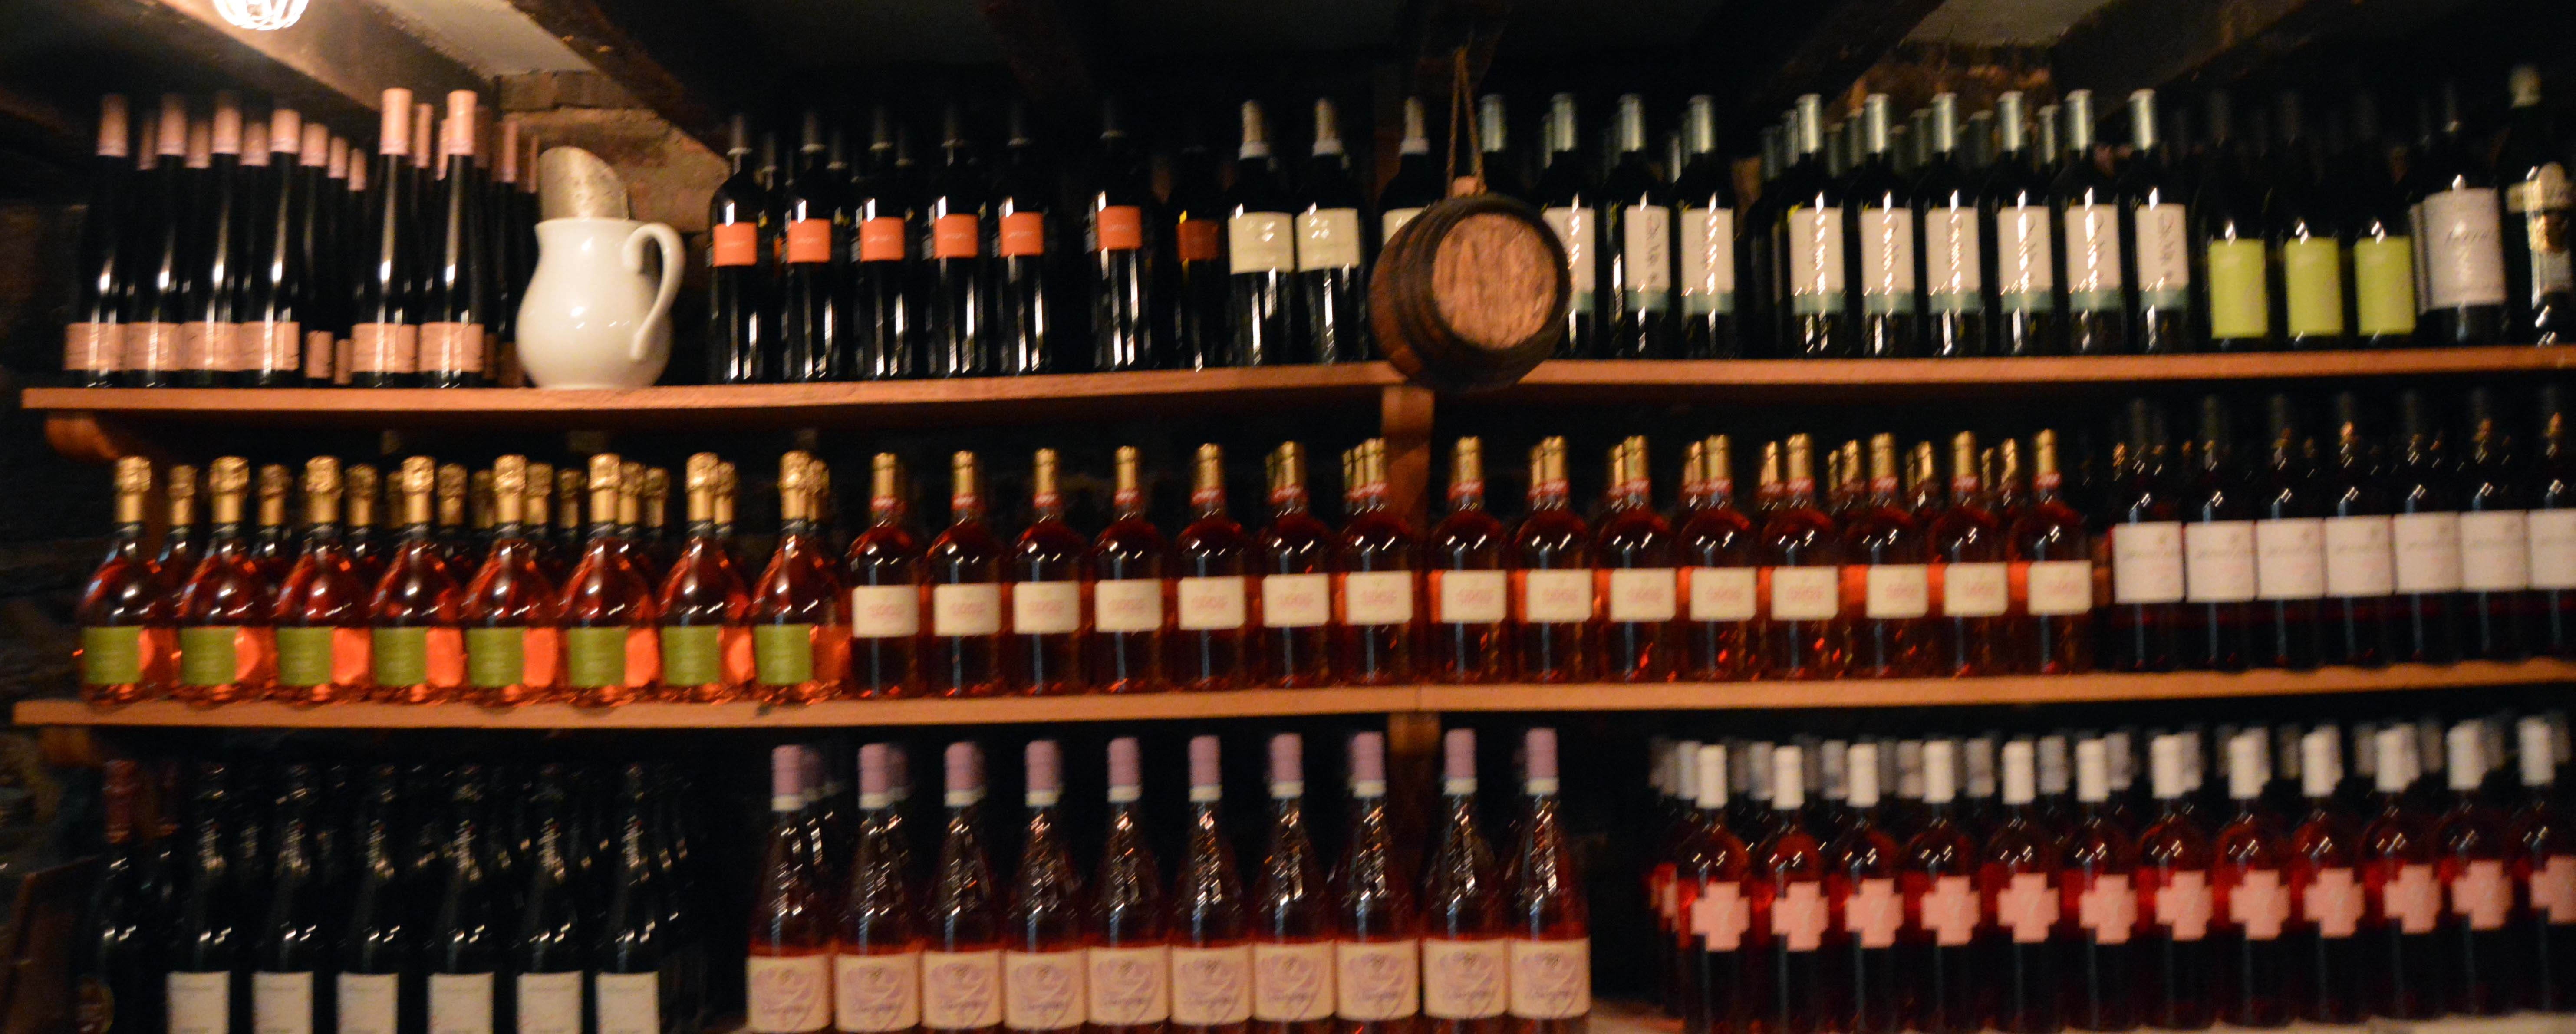 Our extensive wine cellar at Gottino